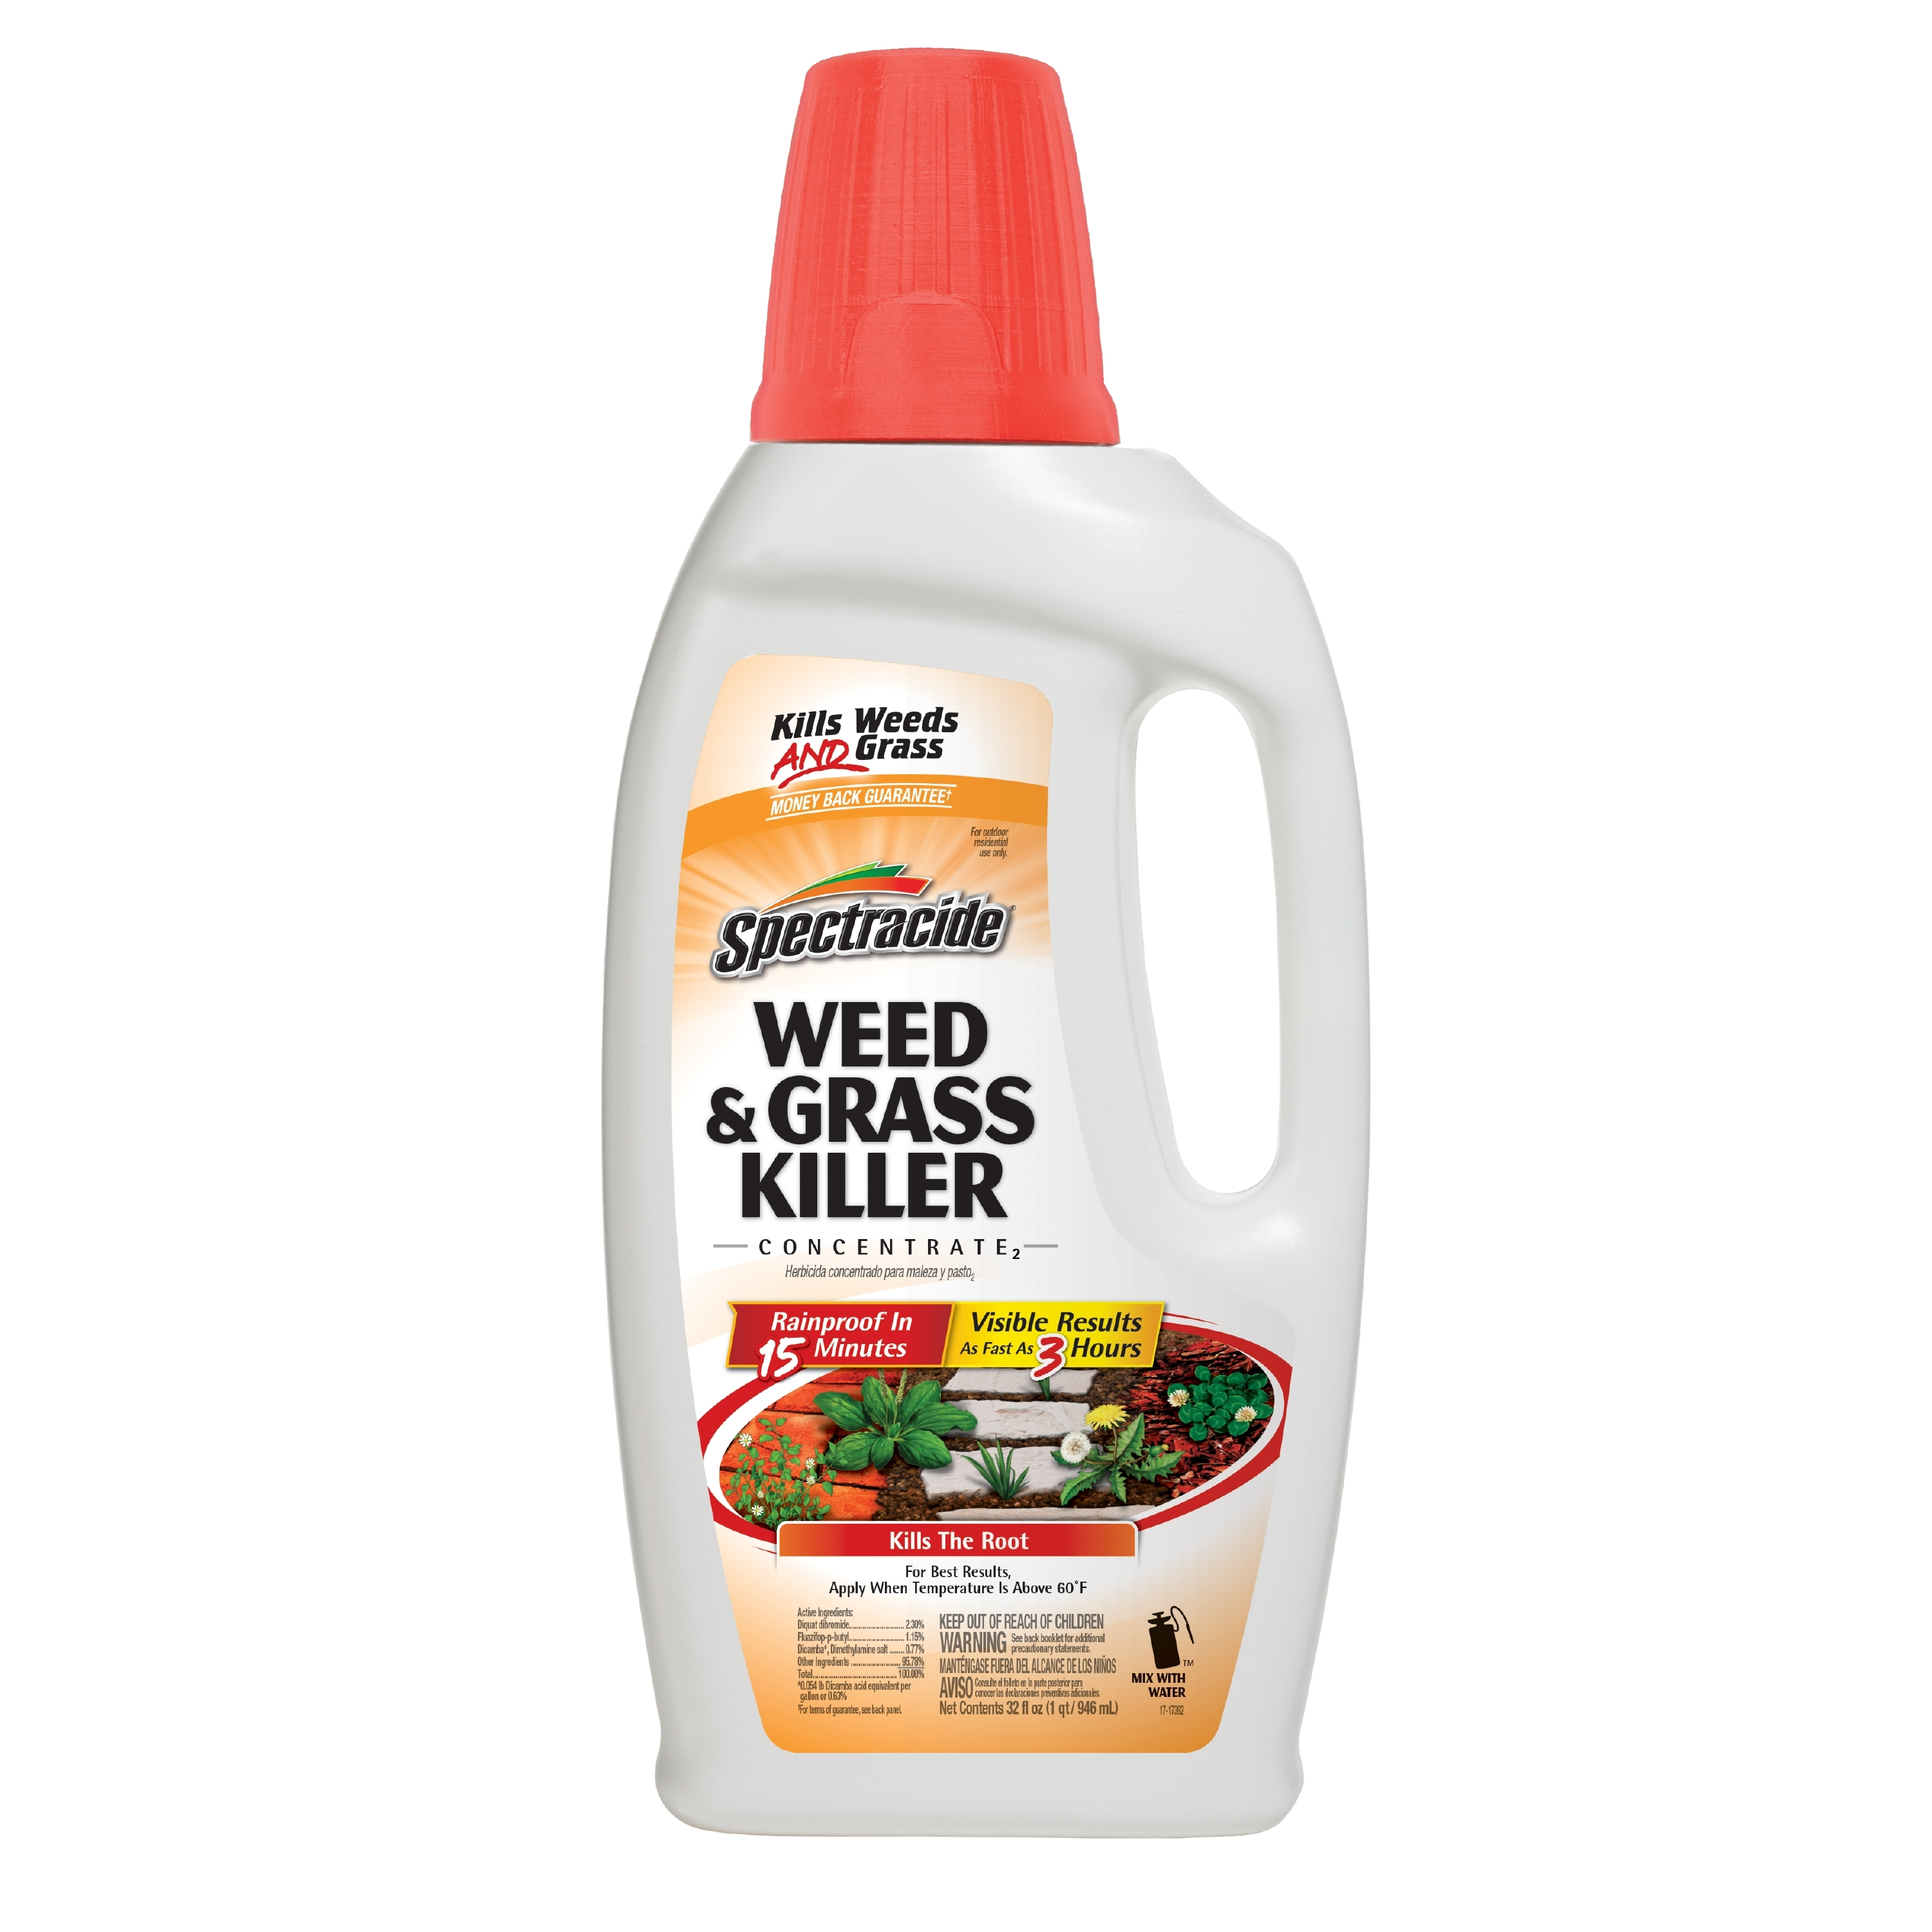 Spectracide Weed & Grass Killer Concentrate, 32-fl oz